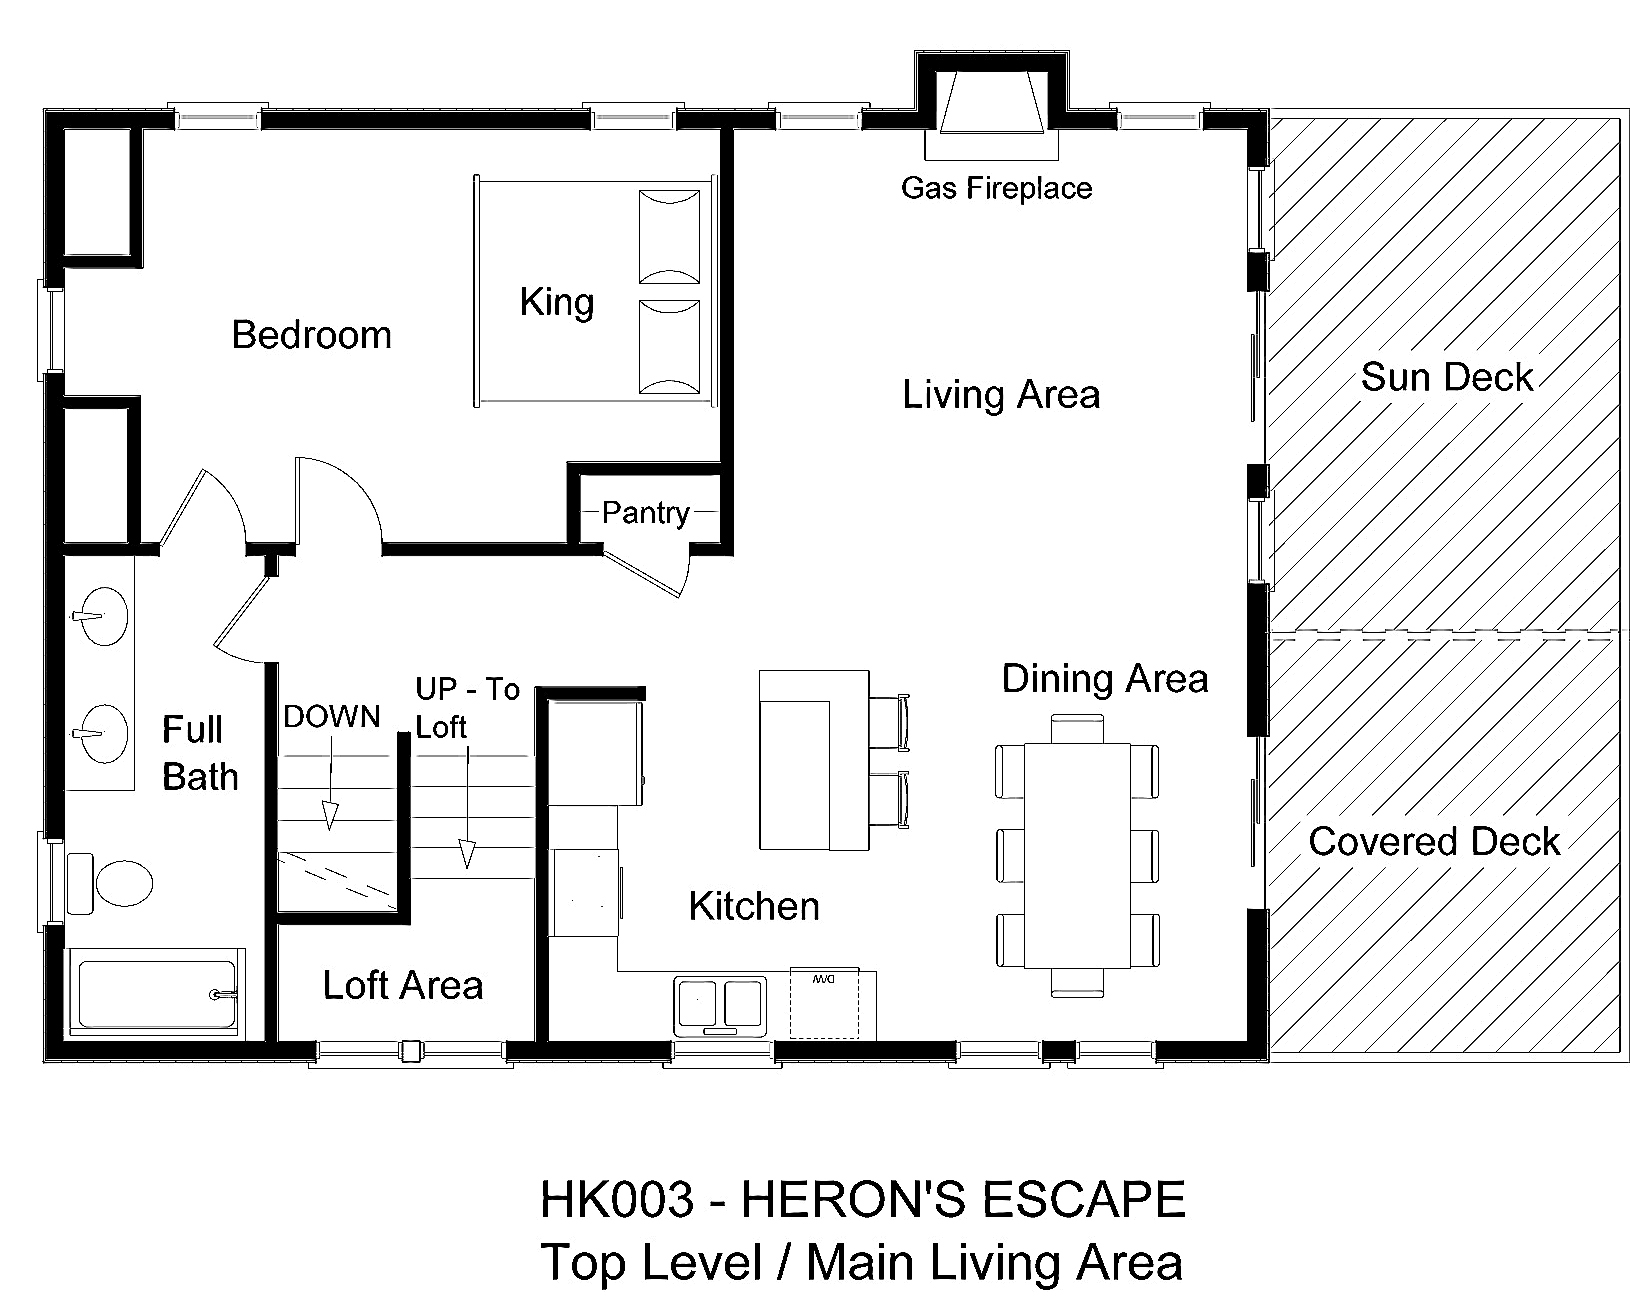 HK003 Heron's Escape - Floorplan Level 3